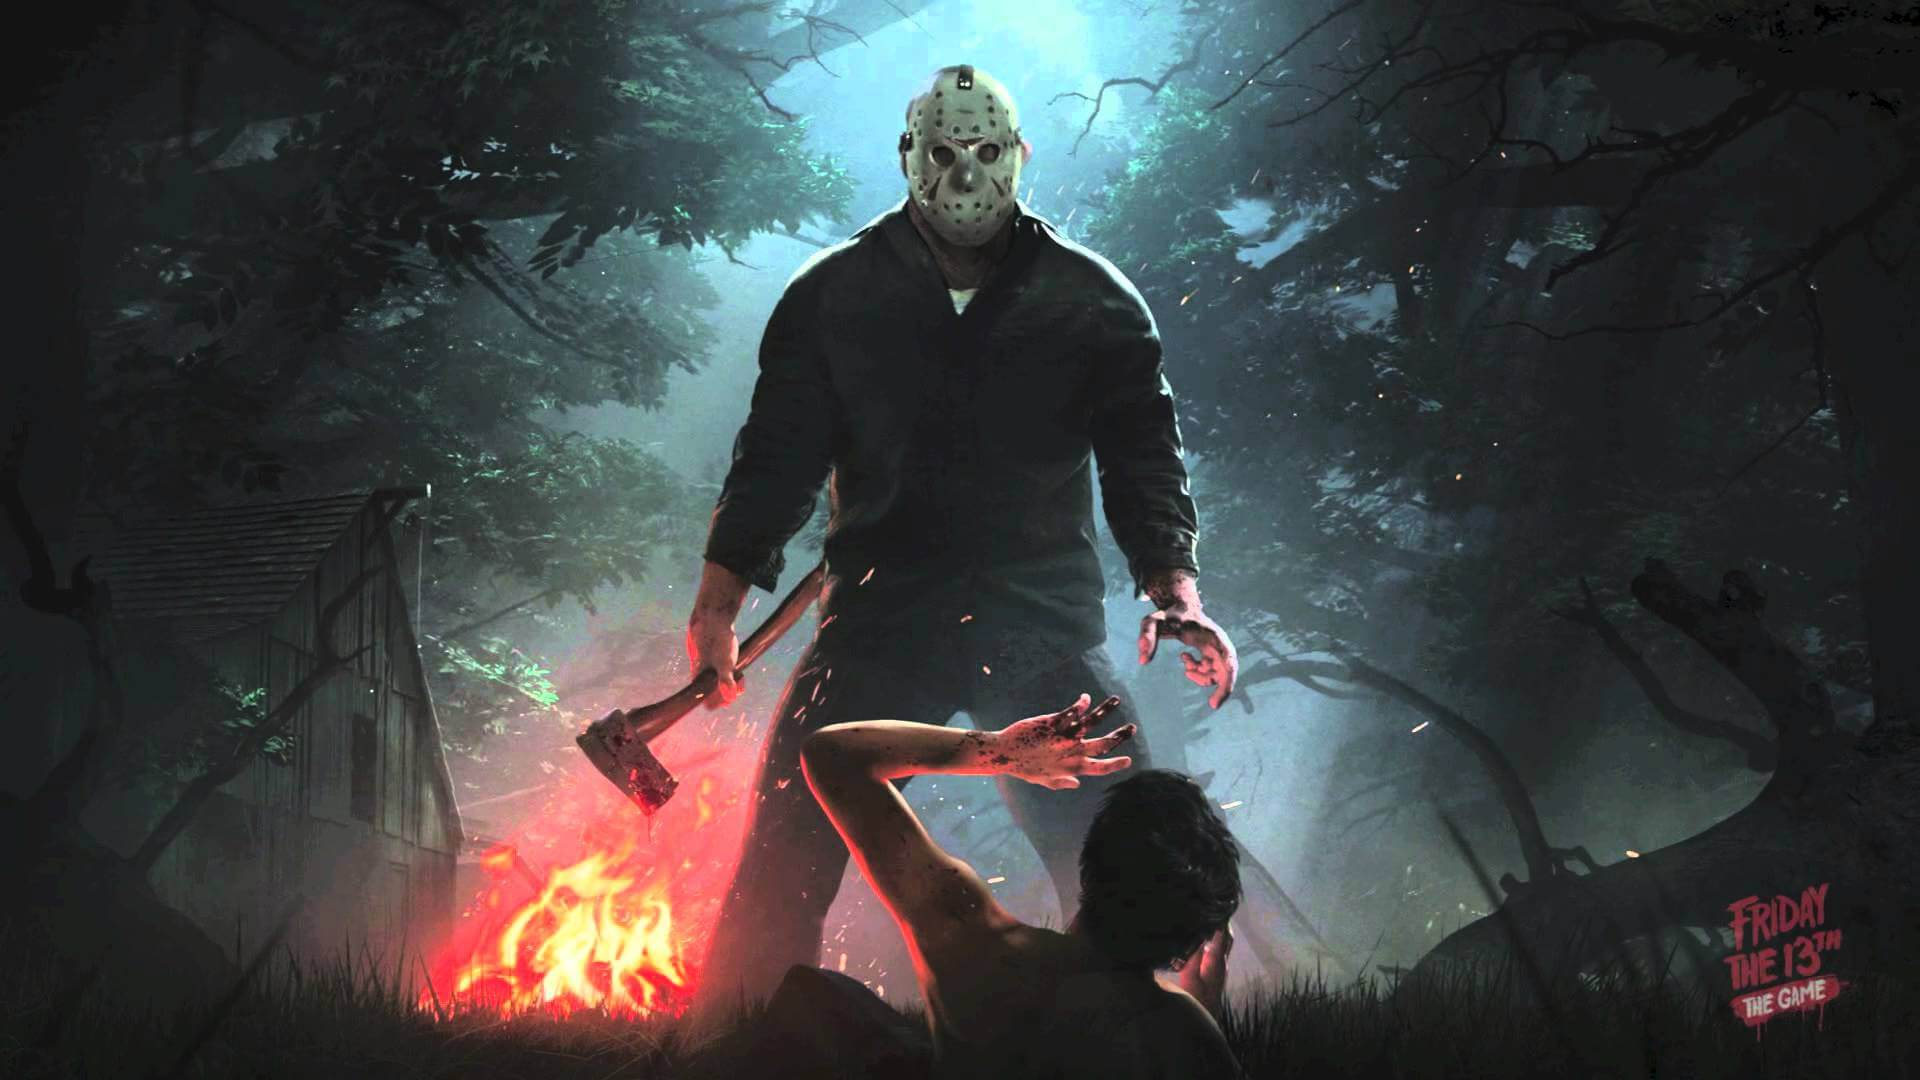 Friday The 13th The Game jason campfire 1 - Interview: Jason Graves on Composing Music for Friday the 13th: The Game